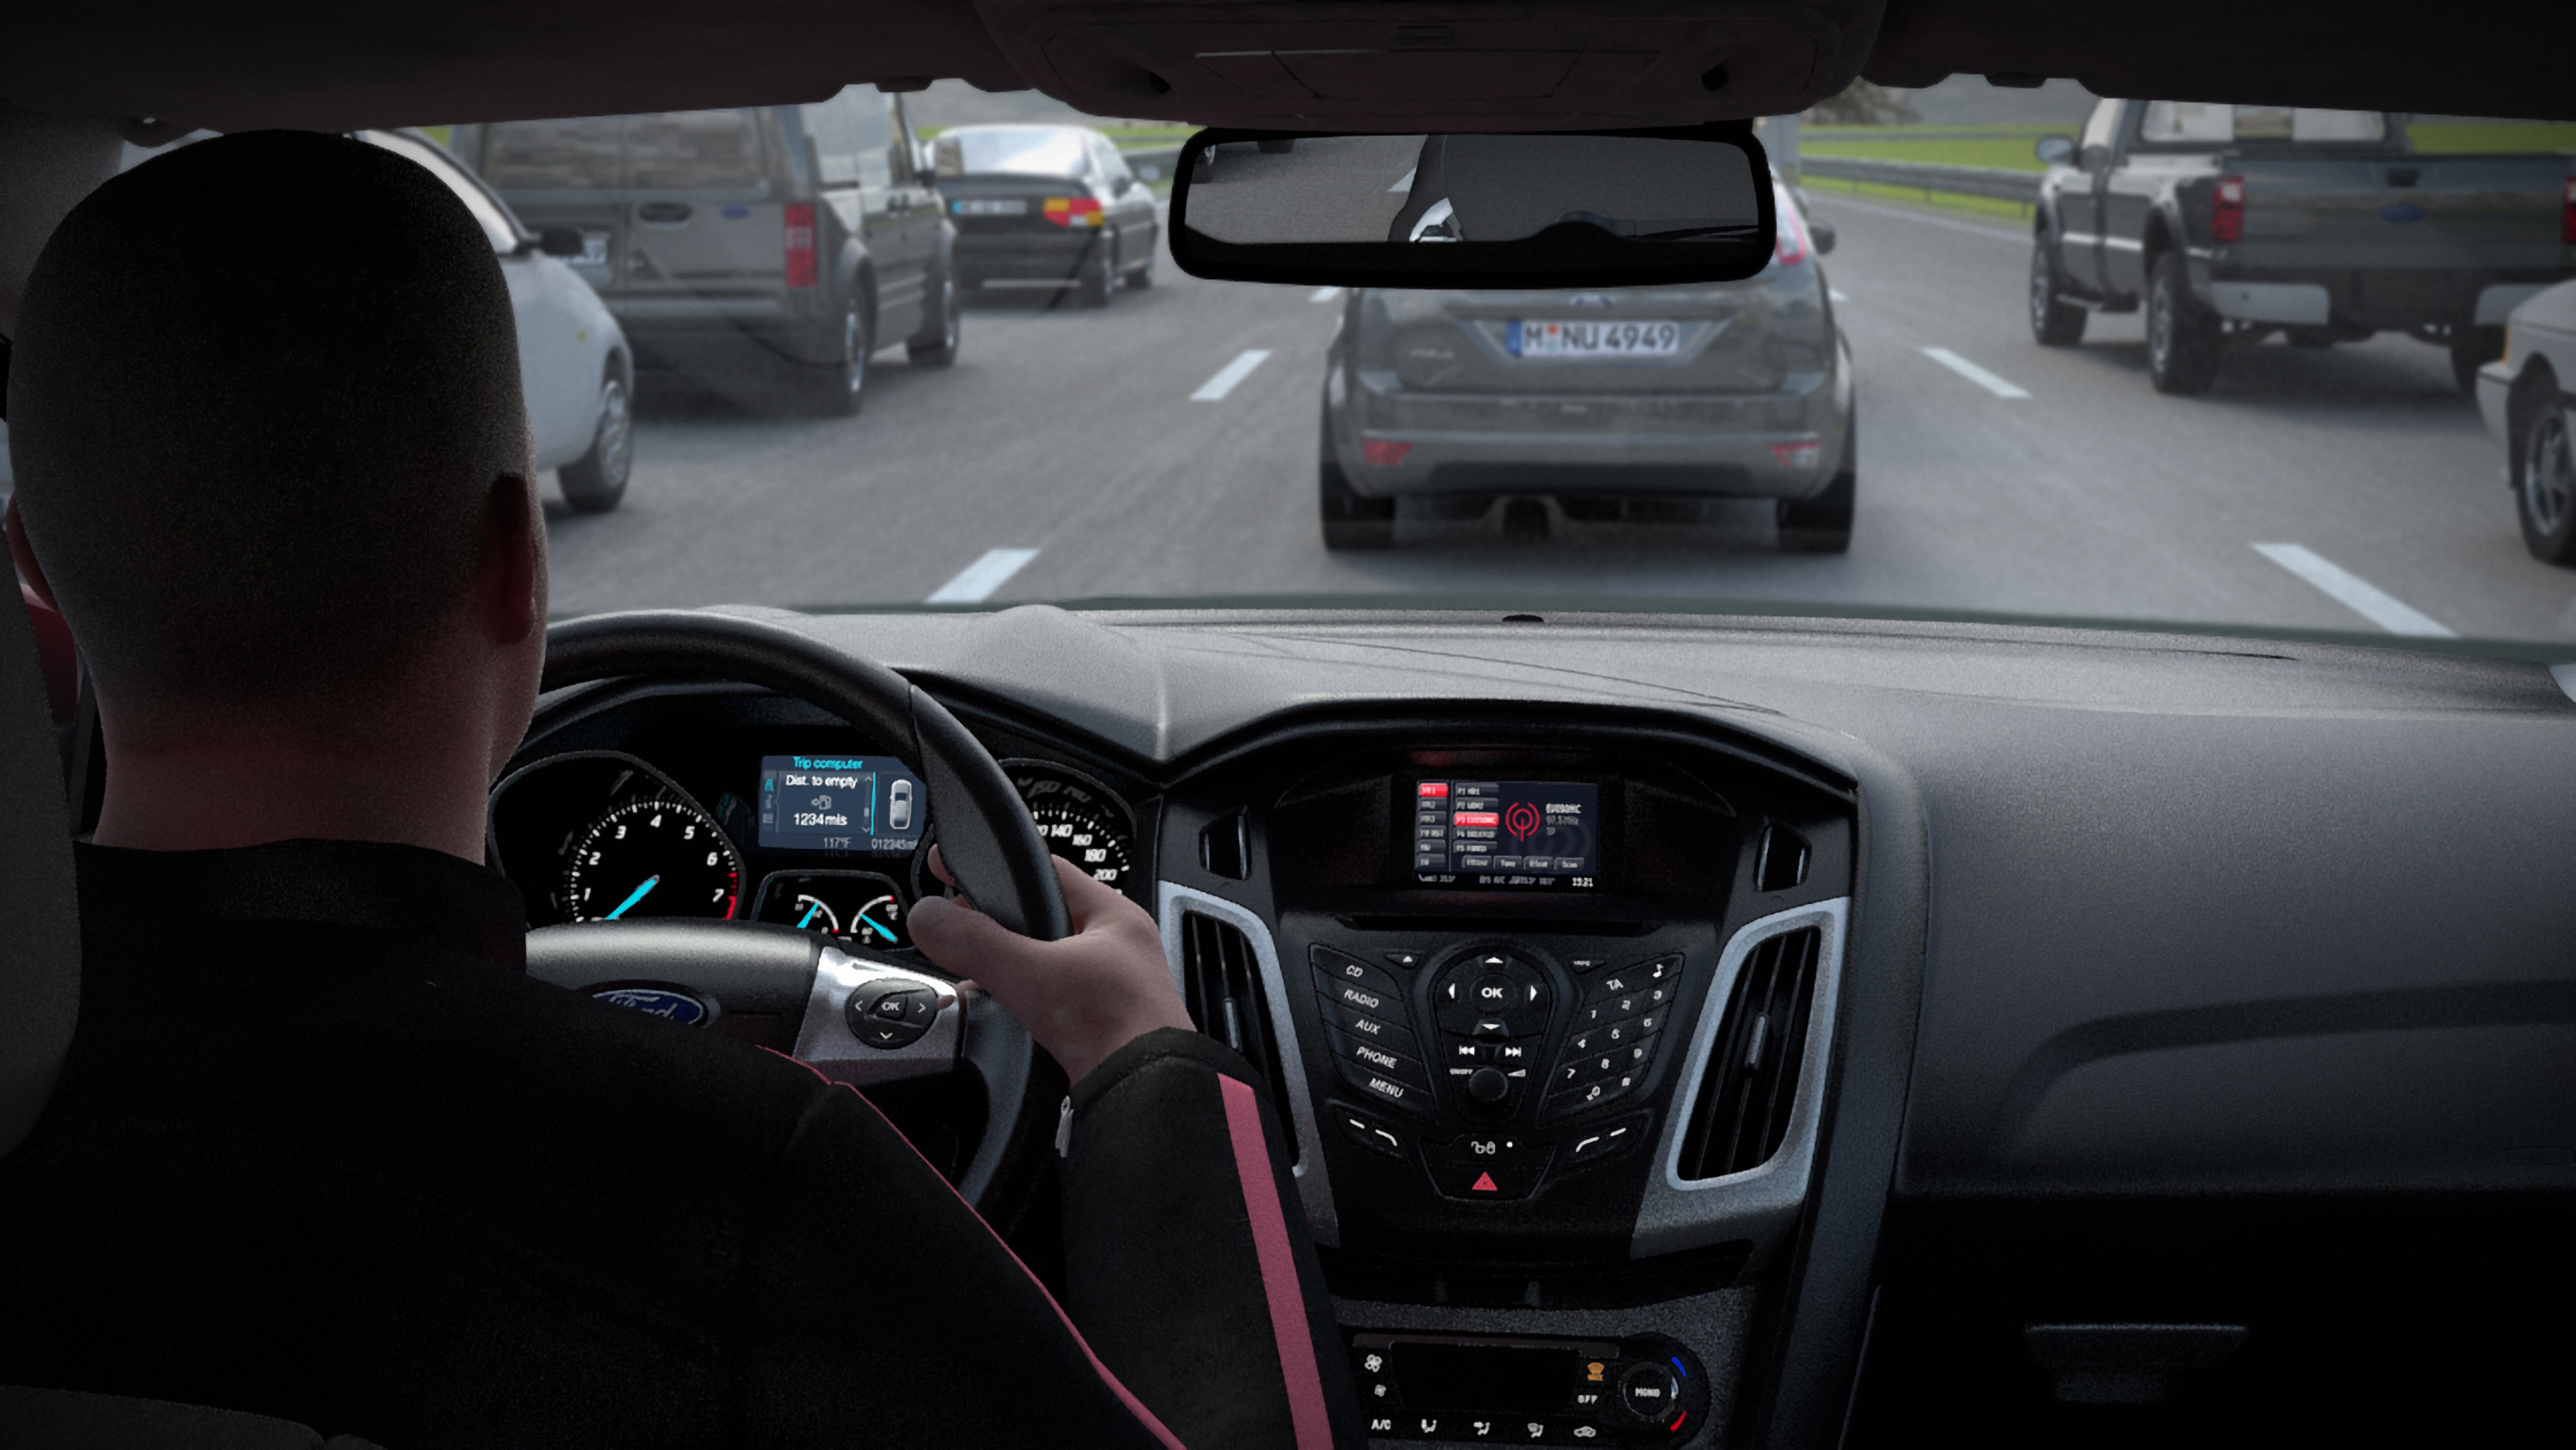 Ford is developing a Traffic Jam Assistant feature that will keep a safe distance between vehicles and maintain its lane position.